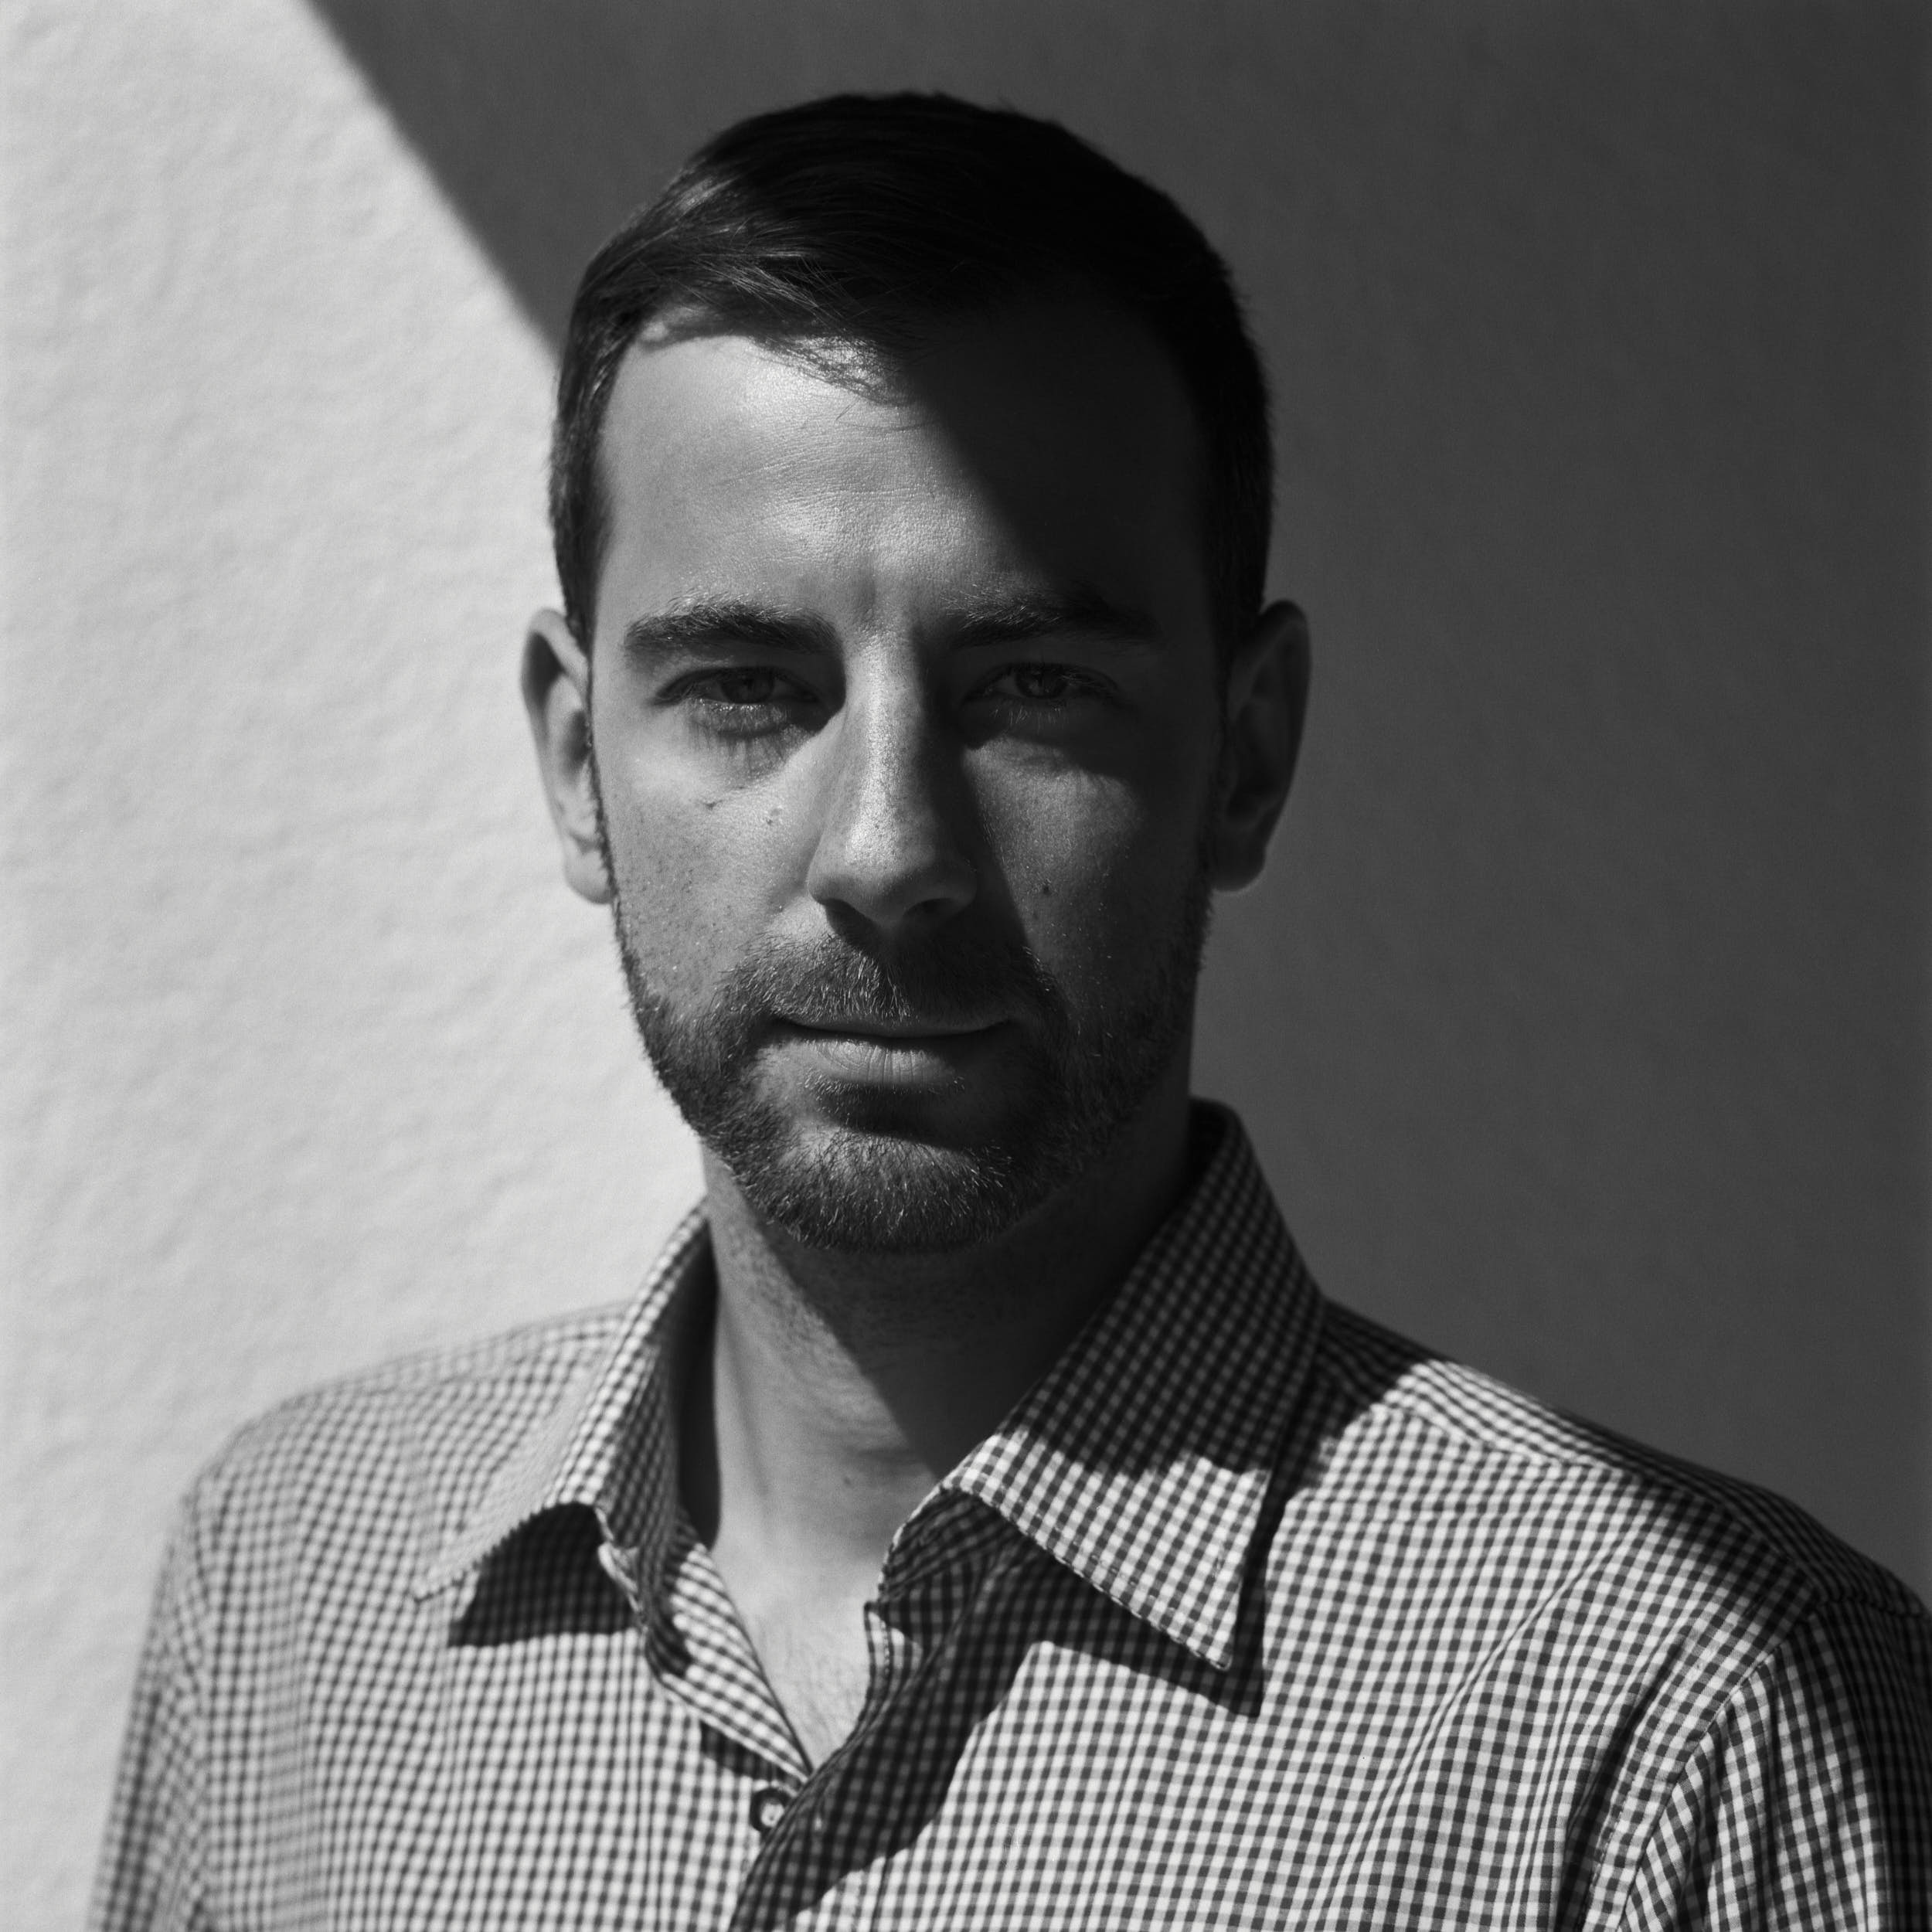 Contrasty portrait of a man with deep shadows wearing checkered shirt. Medium format film photography.